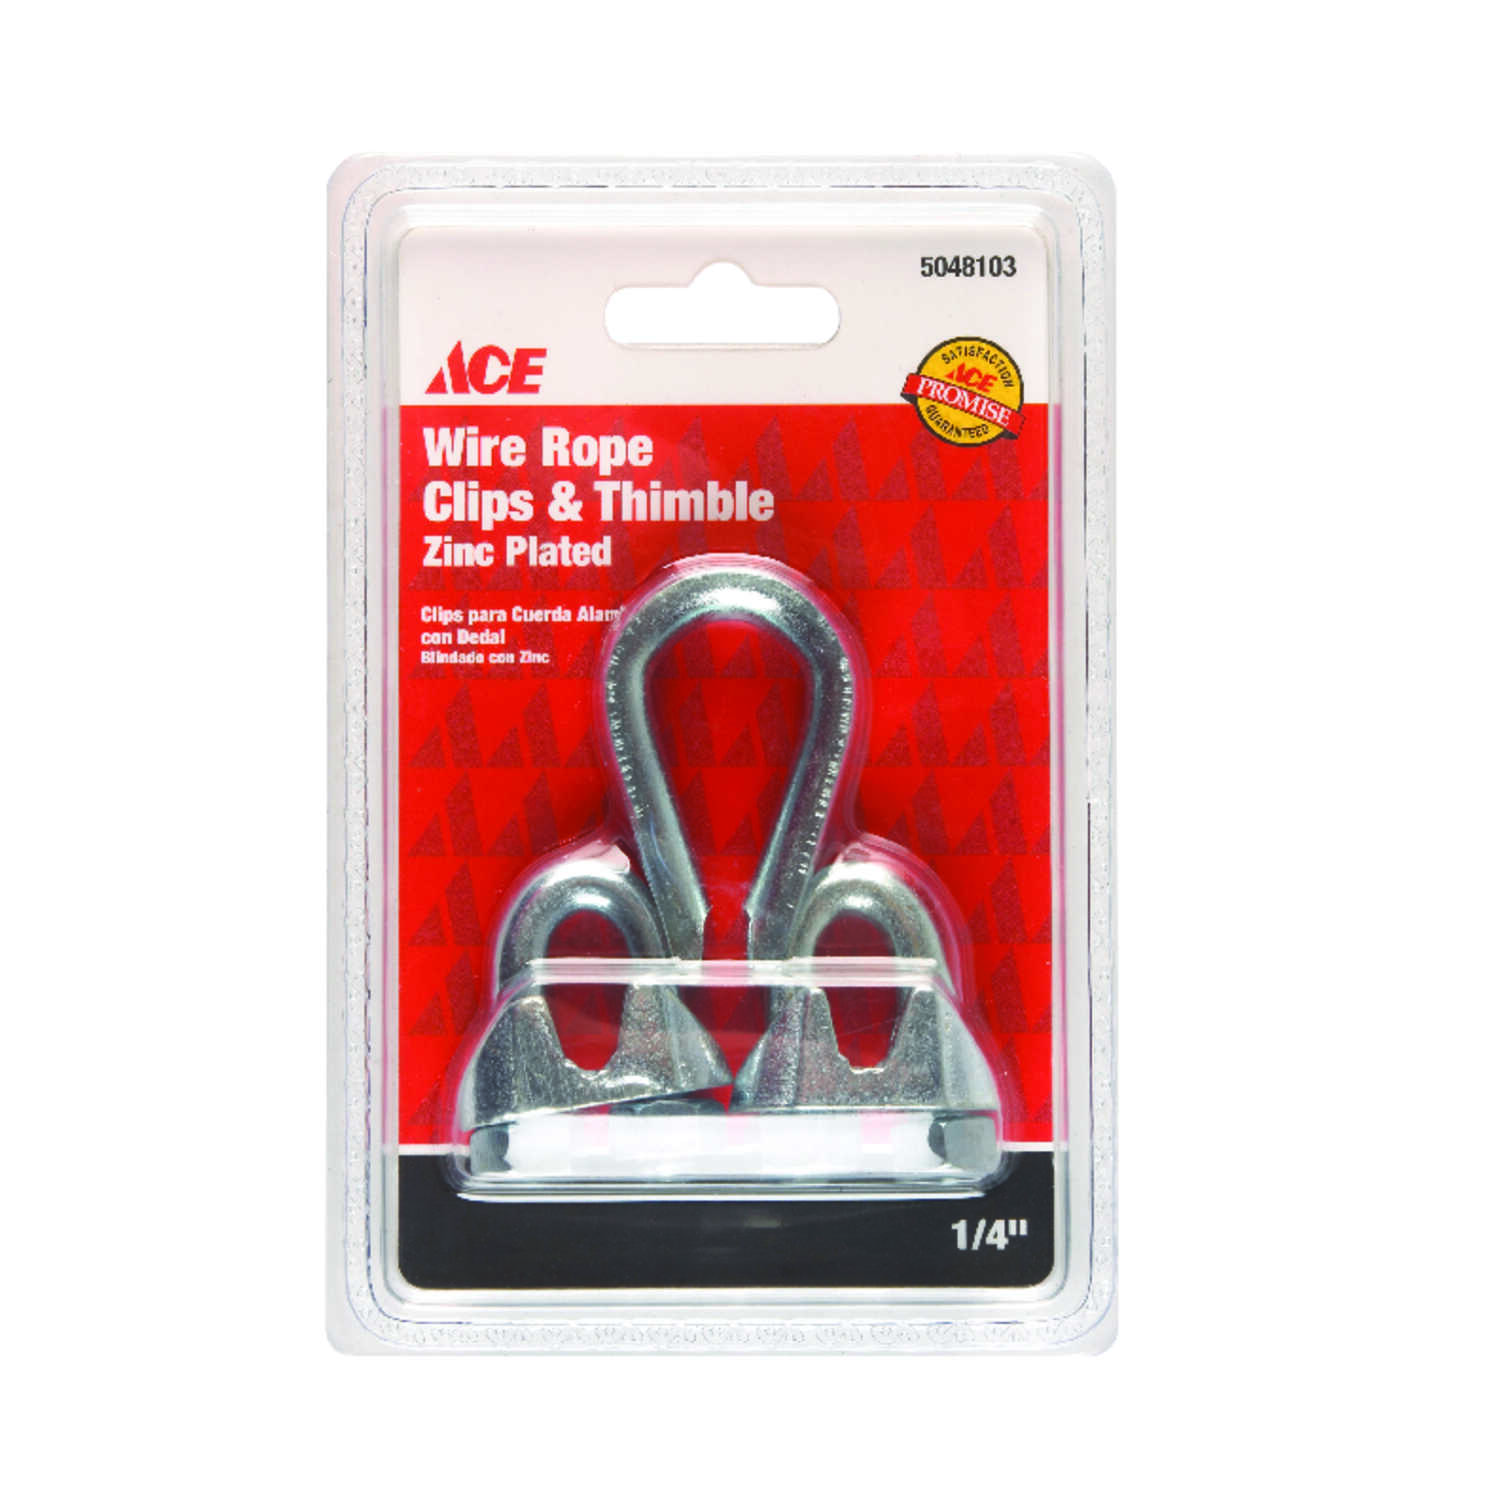 Ace  Galvanized  Steel  Wire Rope Clips and Thimble  1/4 in. L